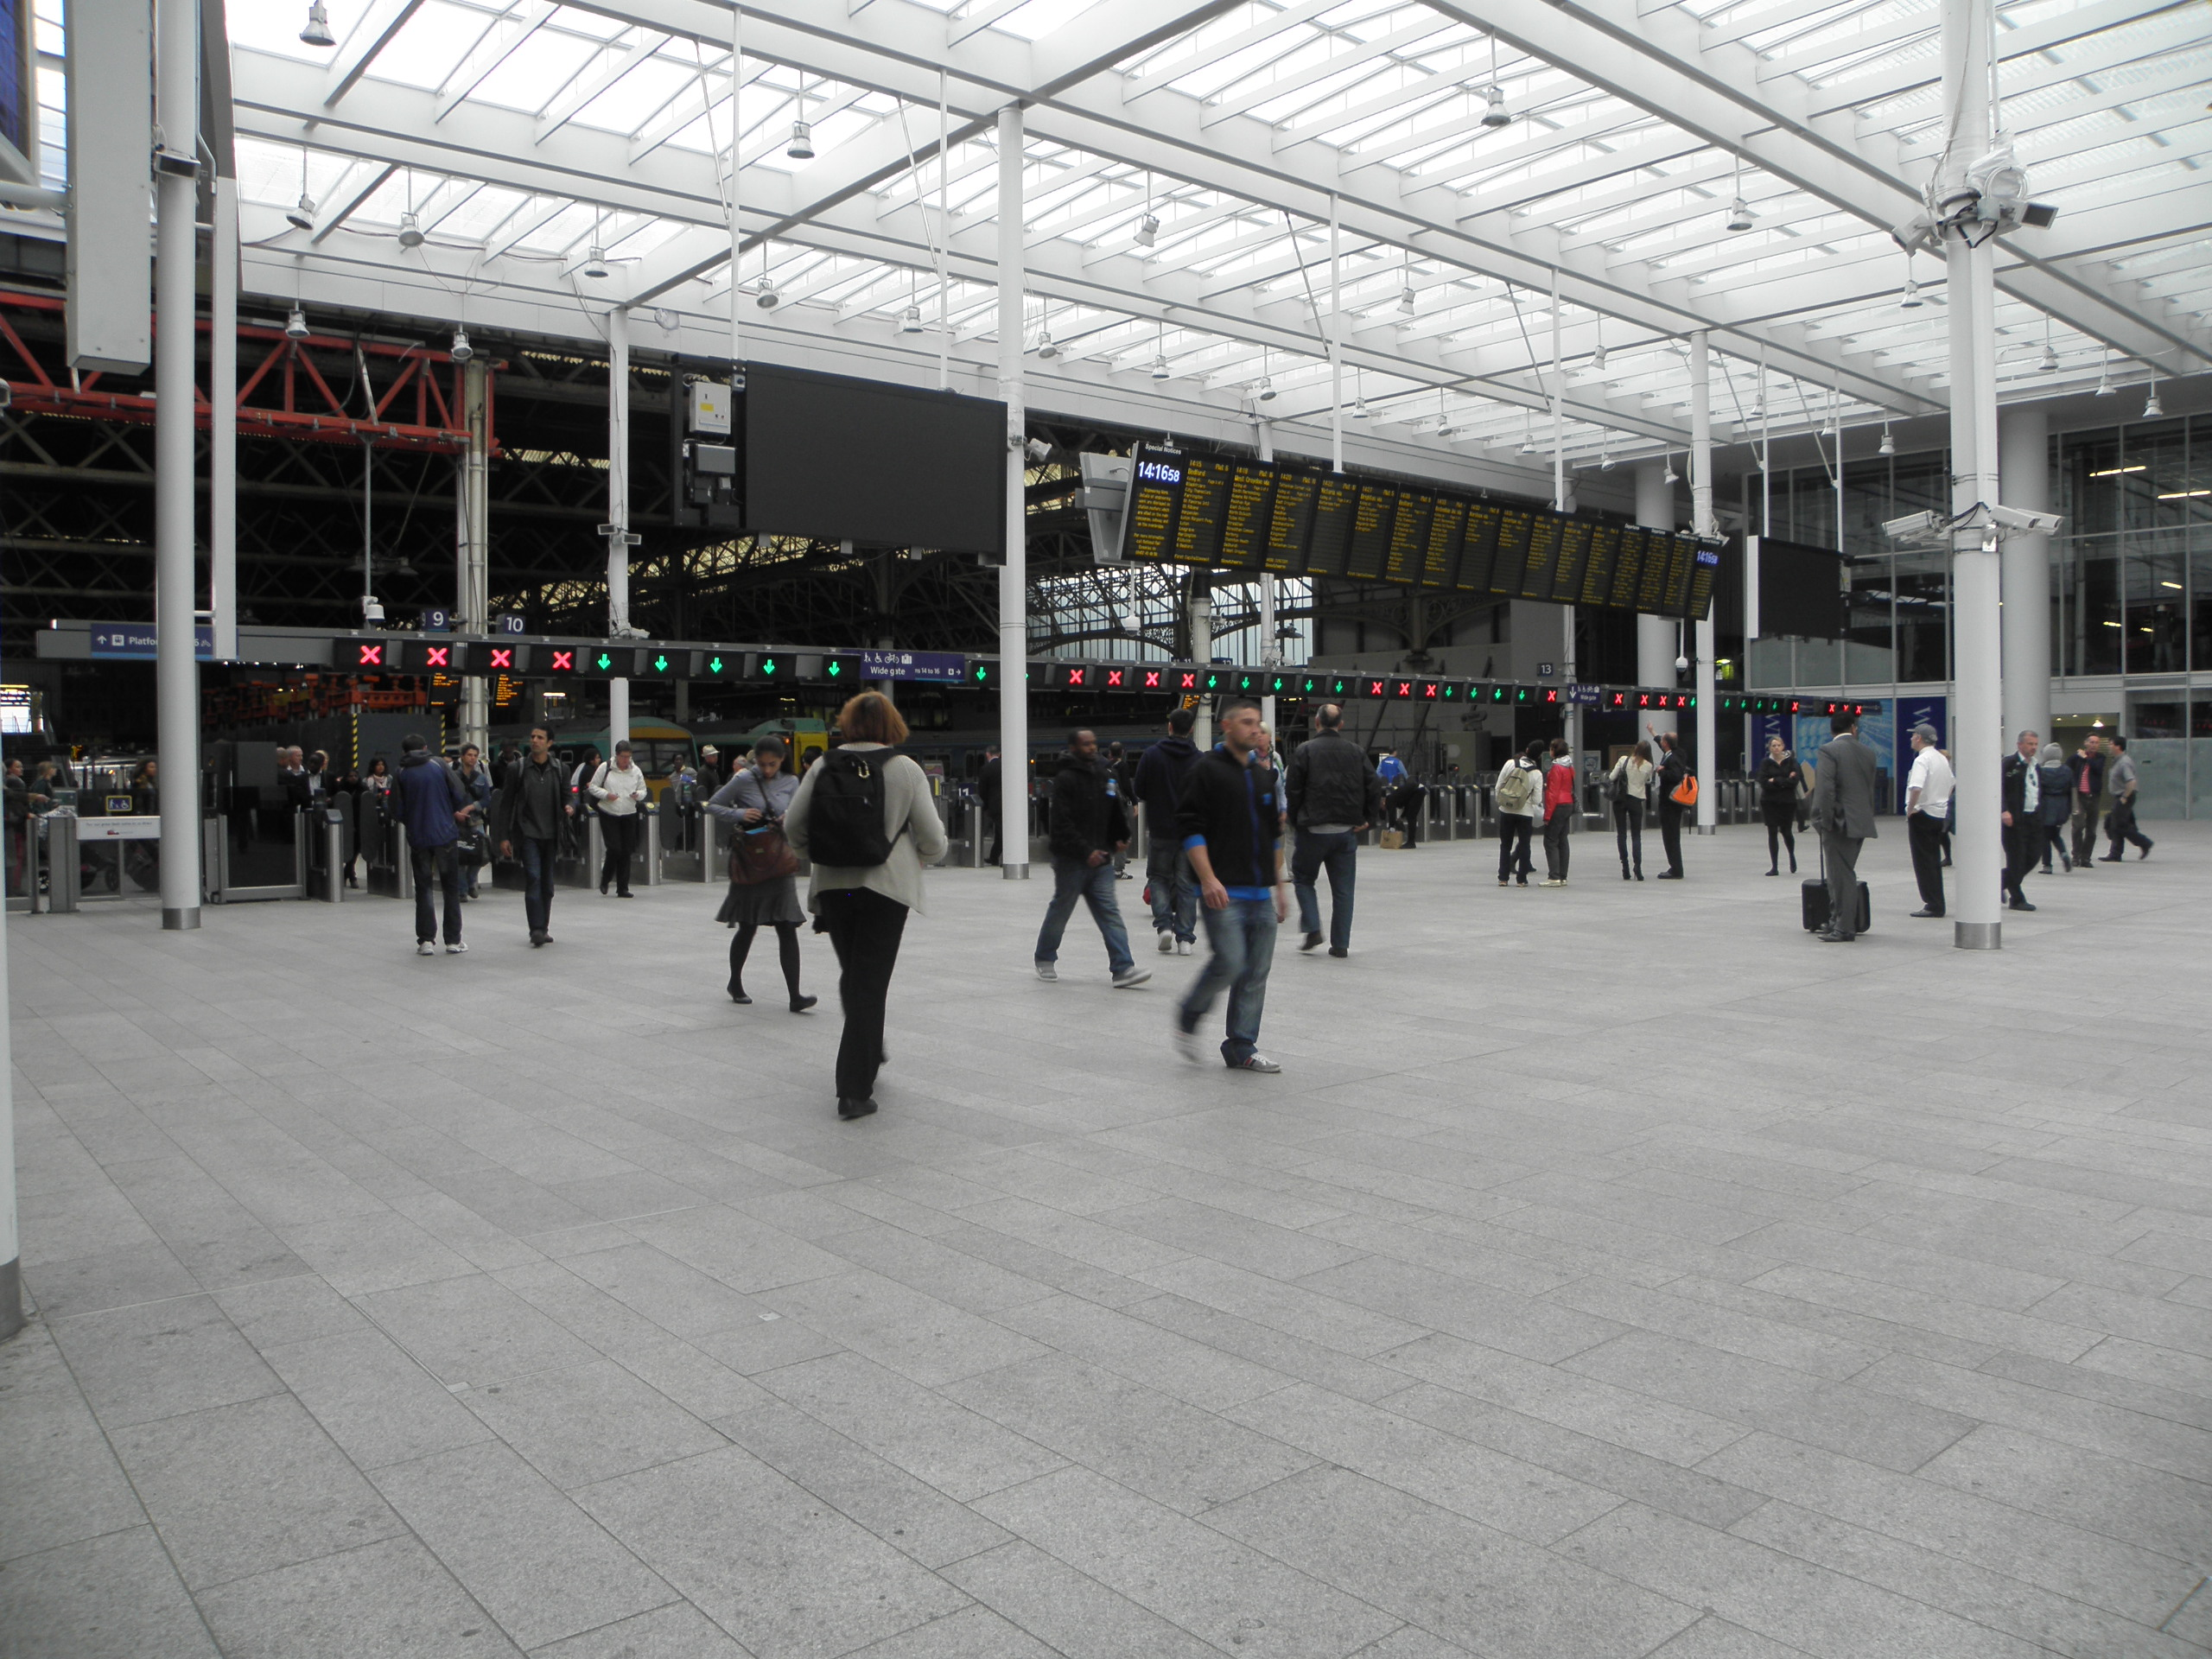 London Bridge railway stn concourse 2012 01.jpg